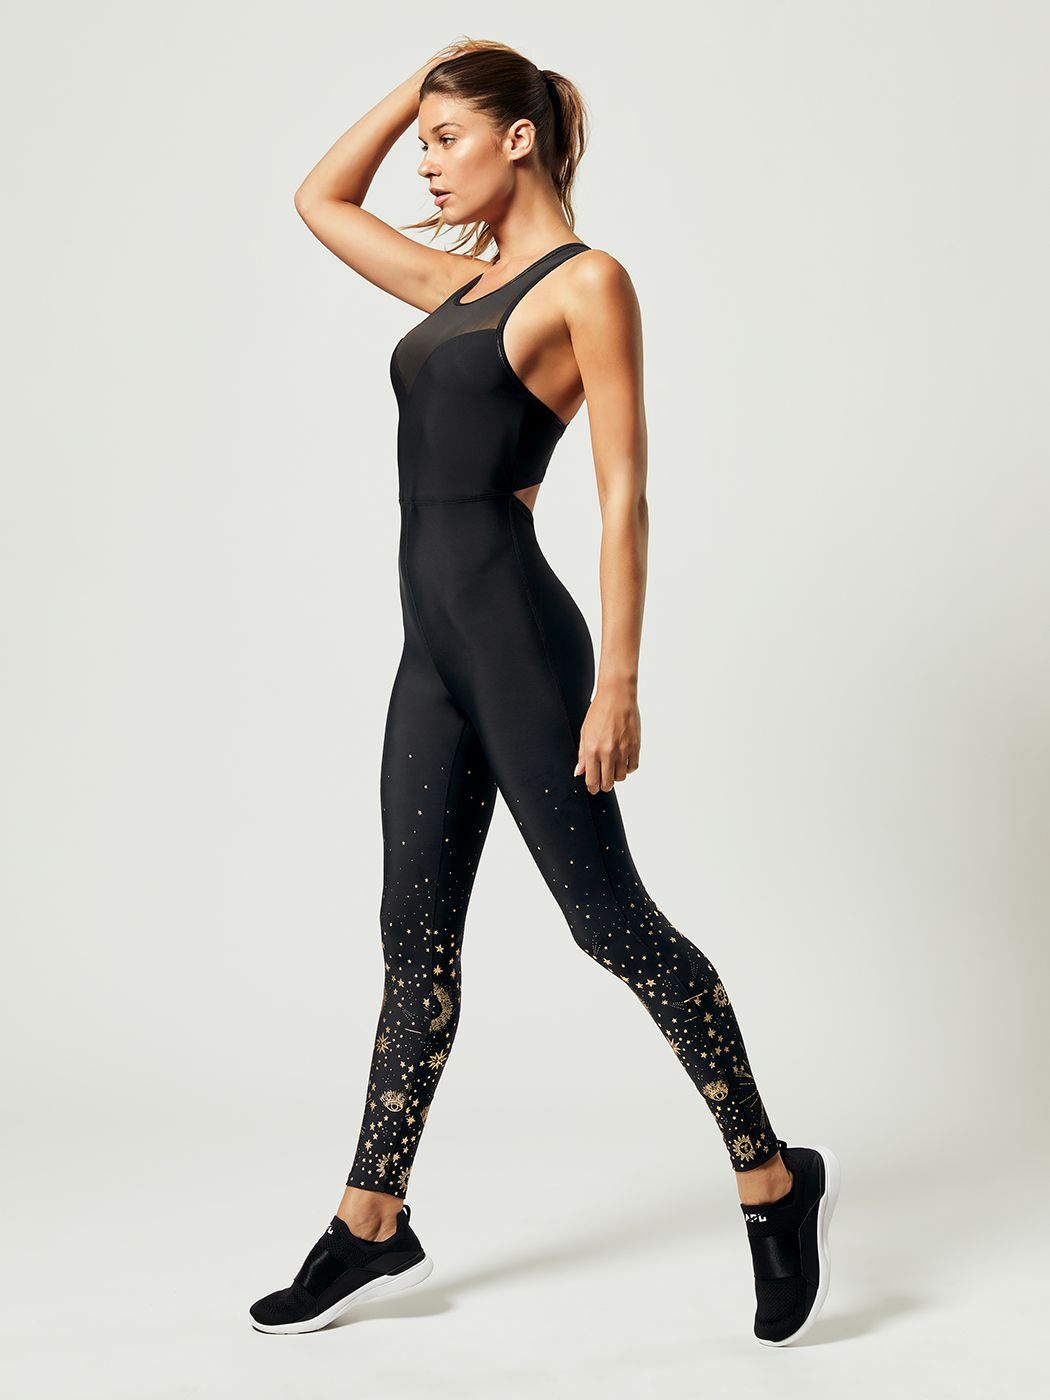 5f263cc7966 Cosmic Cross Back Catsuit Jumpsuit in Black Astrology Fade Print by  Carbon38 from Carbon38